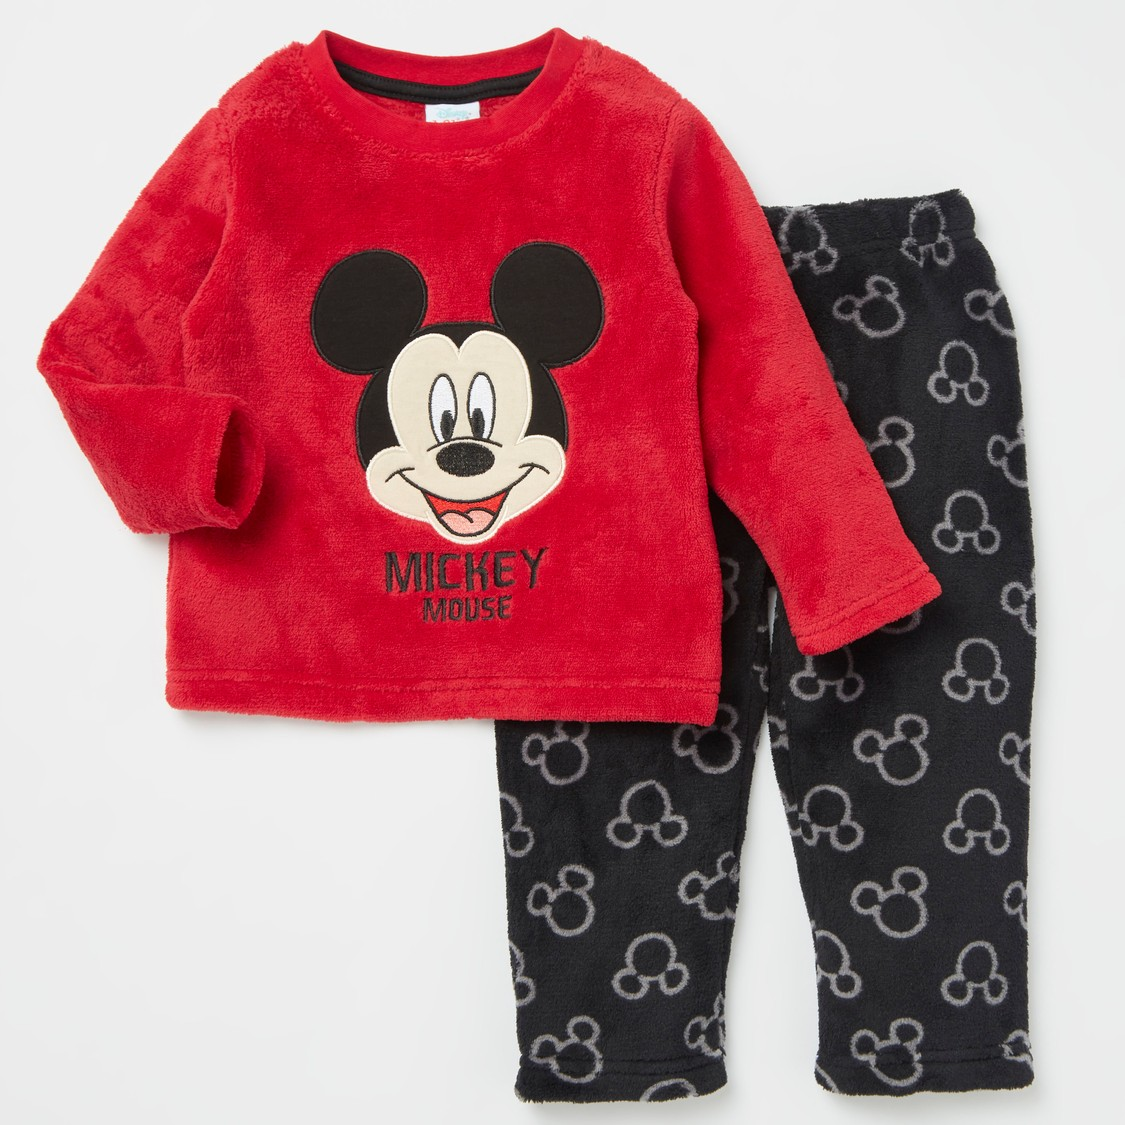 Mickey Mouse Embroidered Detail T-shirt and All-Over Print Pyjama Set